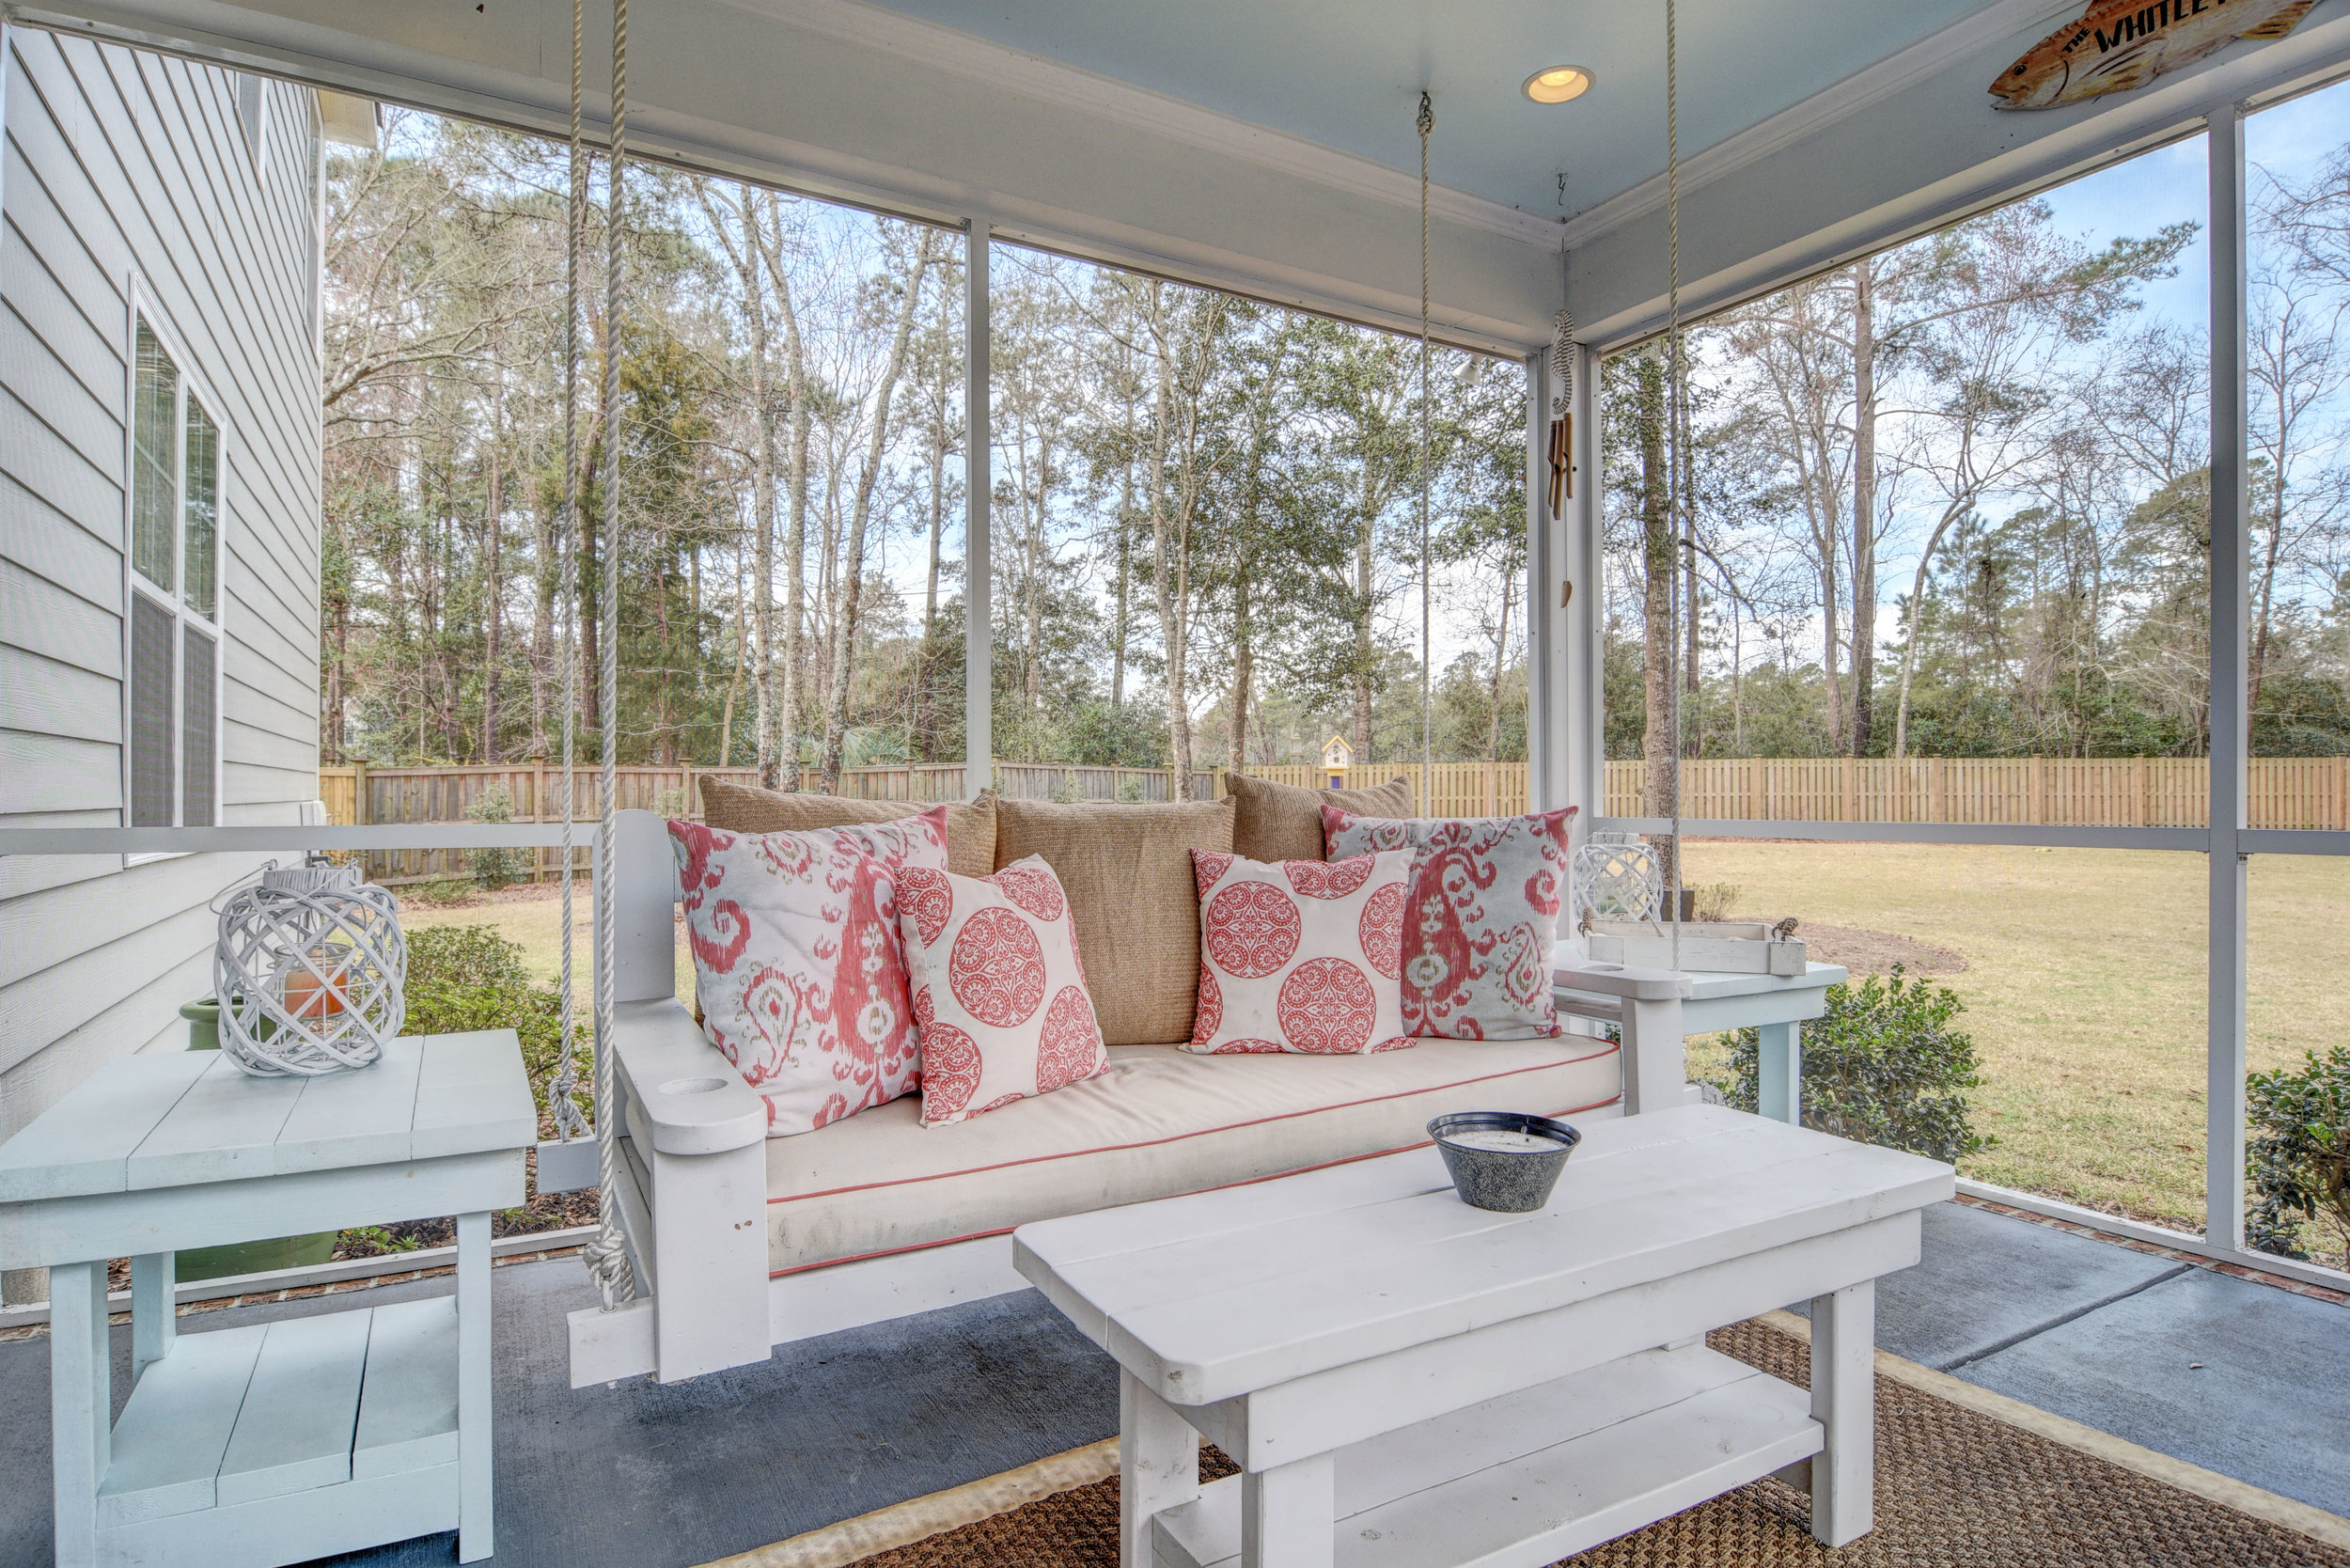 8919 New Forest Dr Wilmington-print-040-40-DSC 3266 7 8-4200x2802-300dpi.jpg